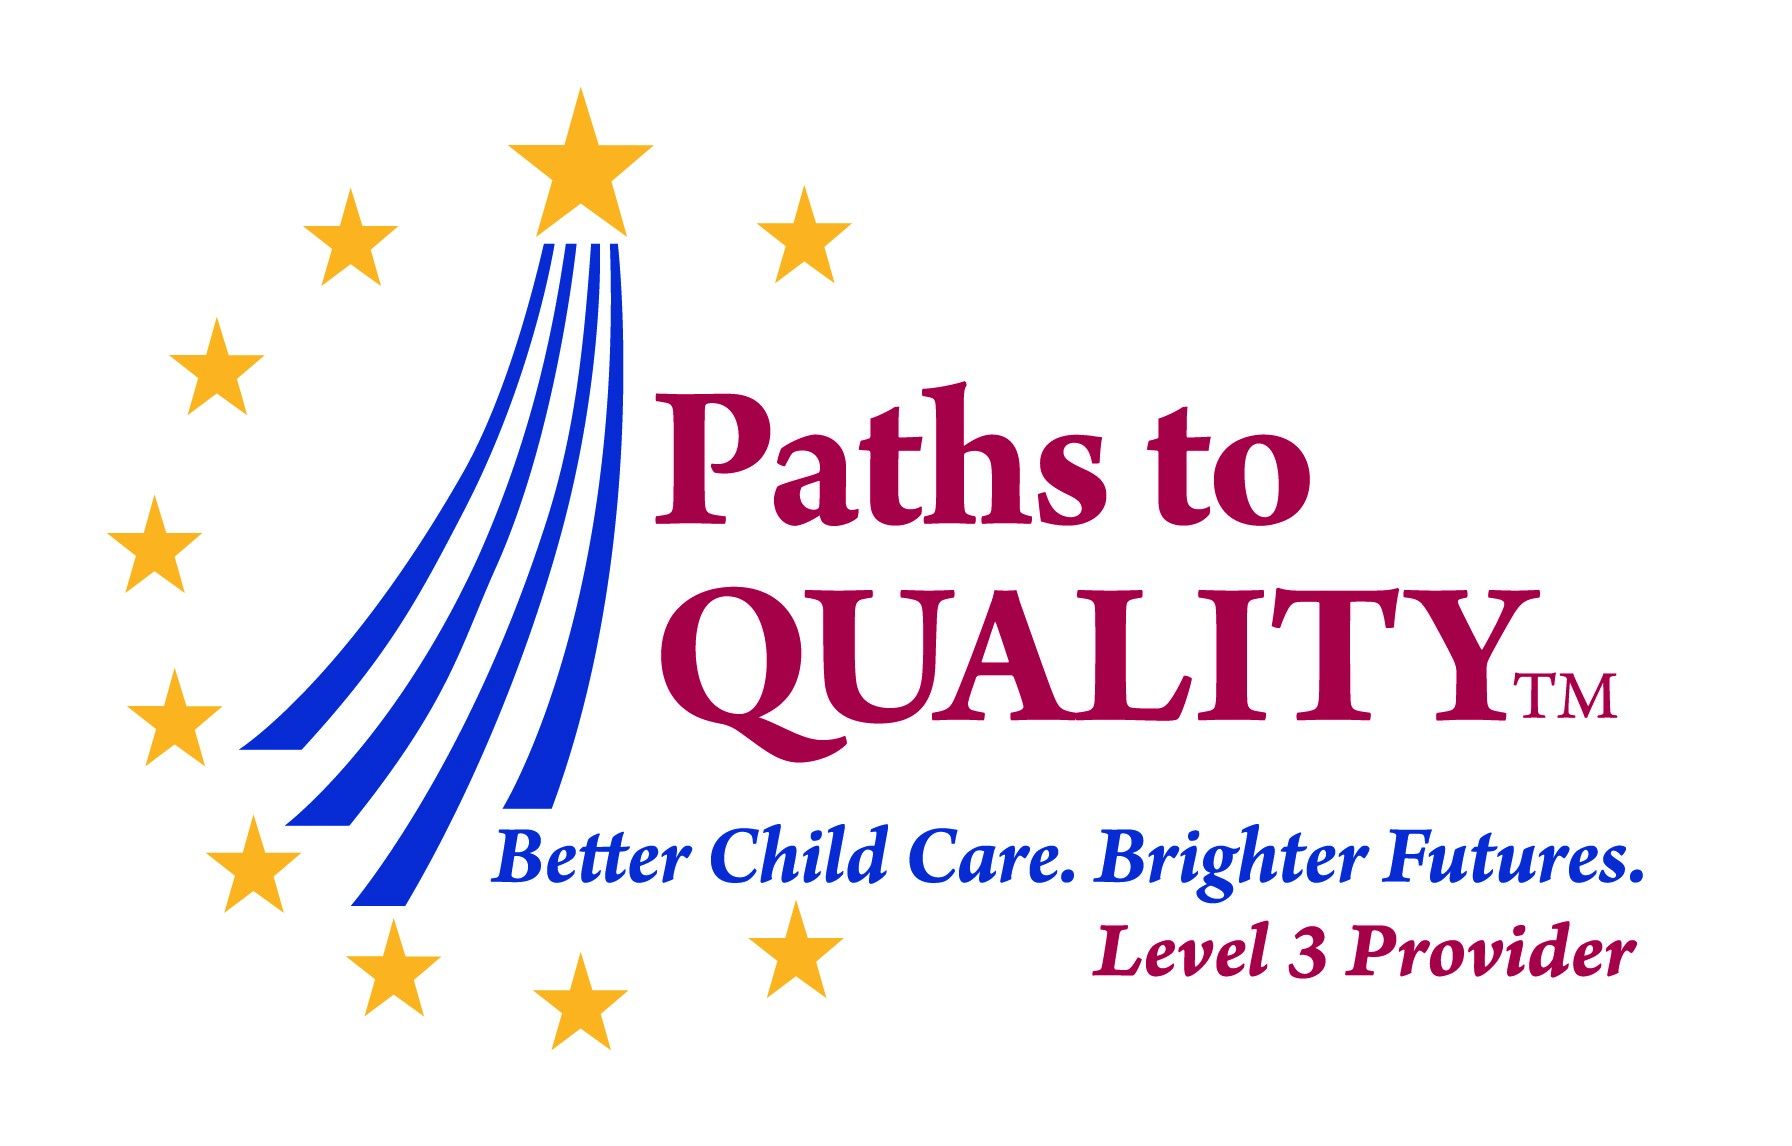 Paths to Quality Level 3 Provider